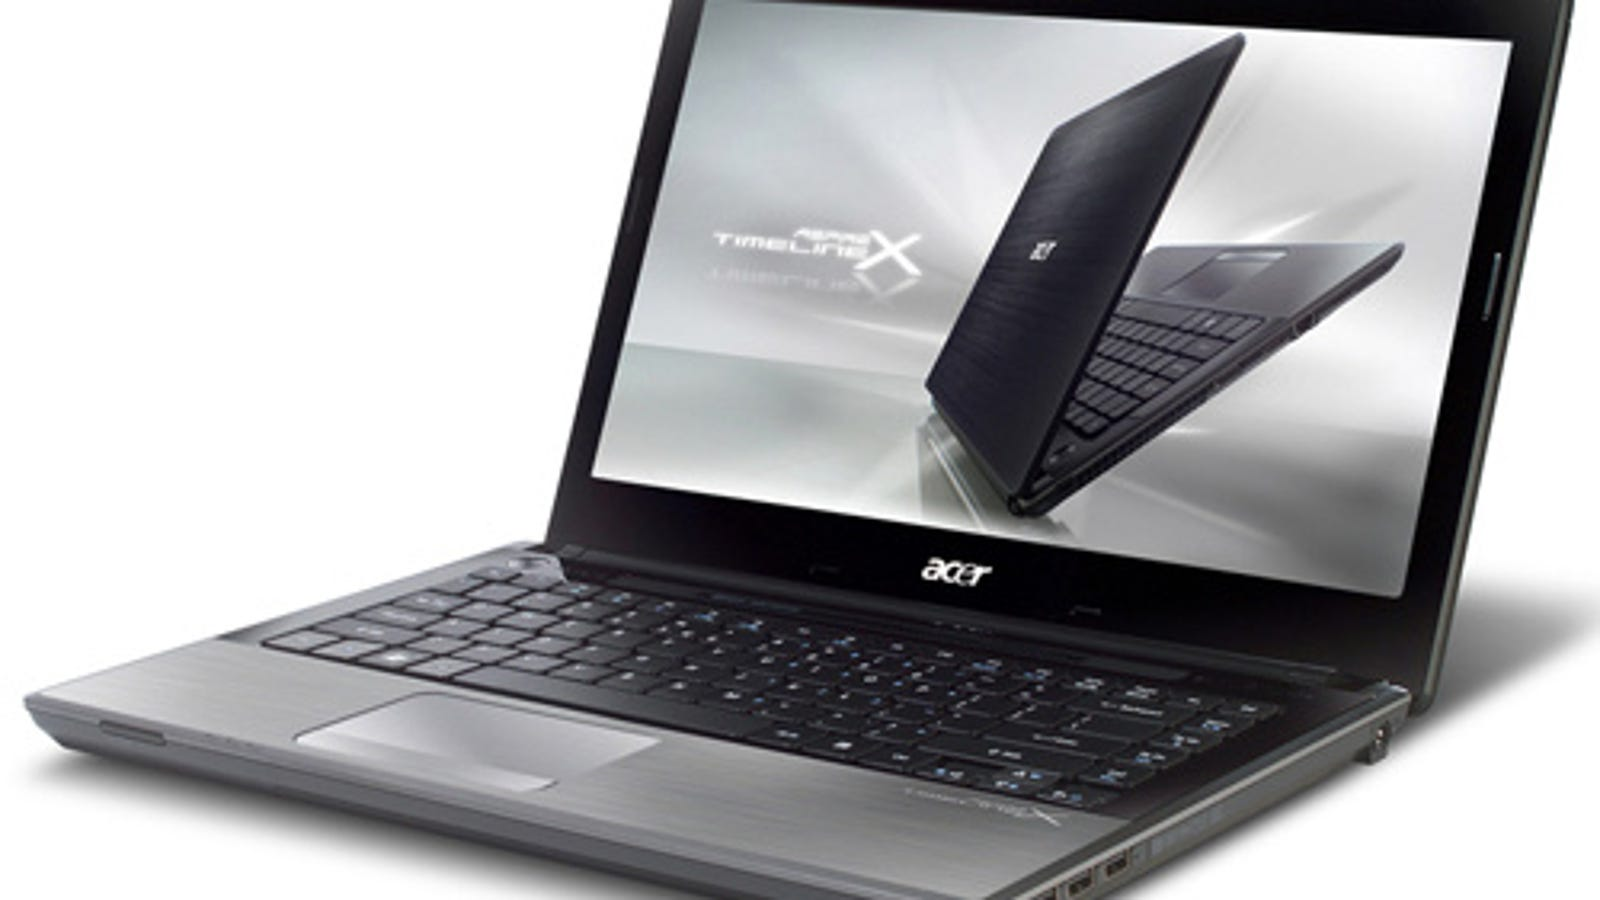 DRIVERS ACER ASPIRE 3820T NOTEBOOK INTEL TURBO BOOST